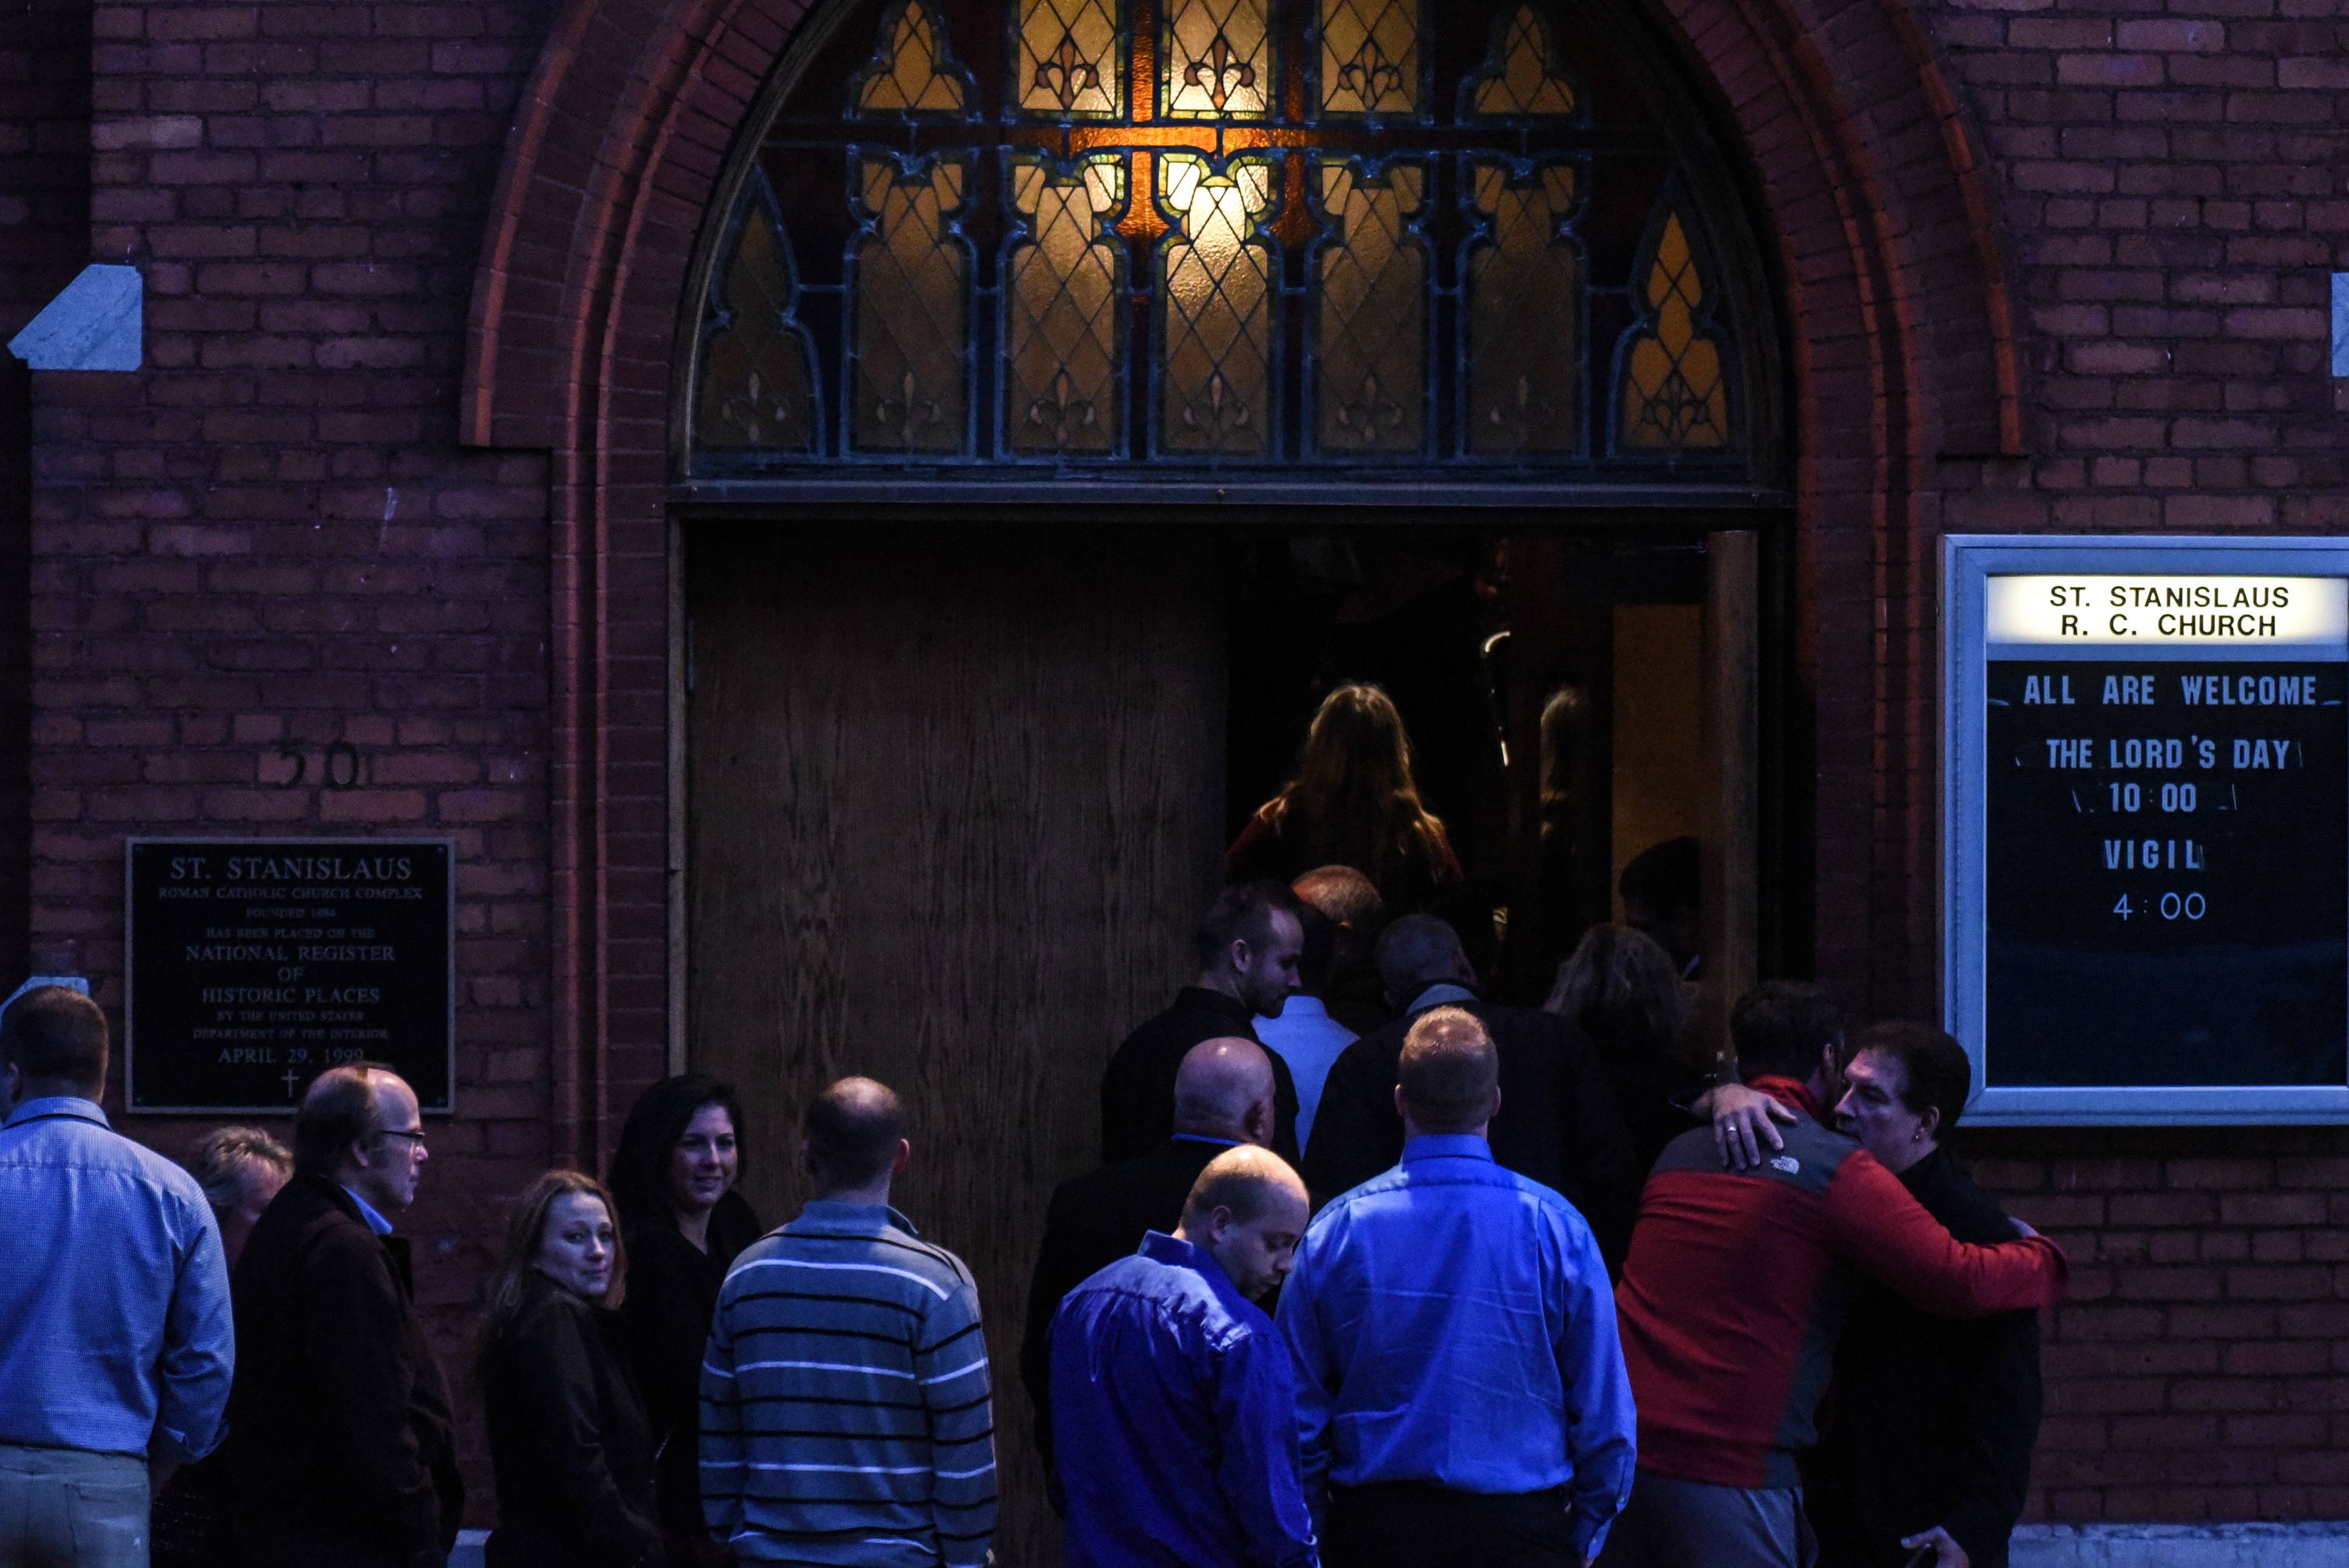 Mourners line up in front of St. Stanislaus Roman Catholic Church to pay their respects to some of the victims in last weekend's fatal limo crash on October 12, 2018 in Amsterdam, New York. 20 people died in the crash including the driver of the limousine, 17 passengers, and two pedestrians. Photo by Stephanie Keith/Getty Images